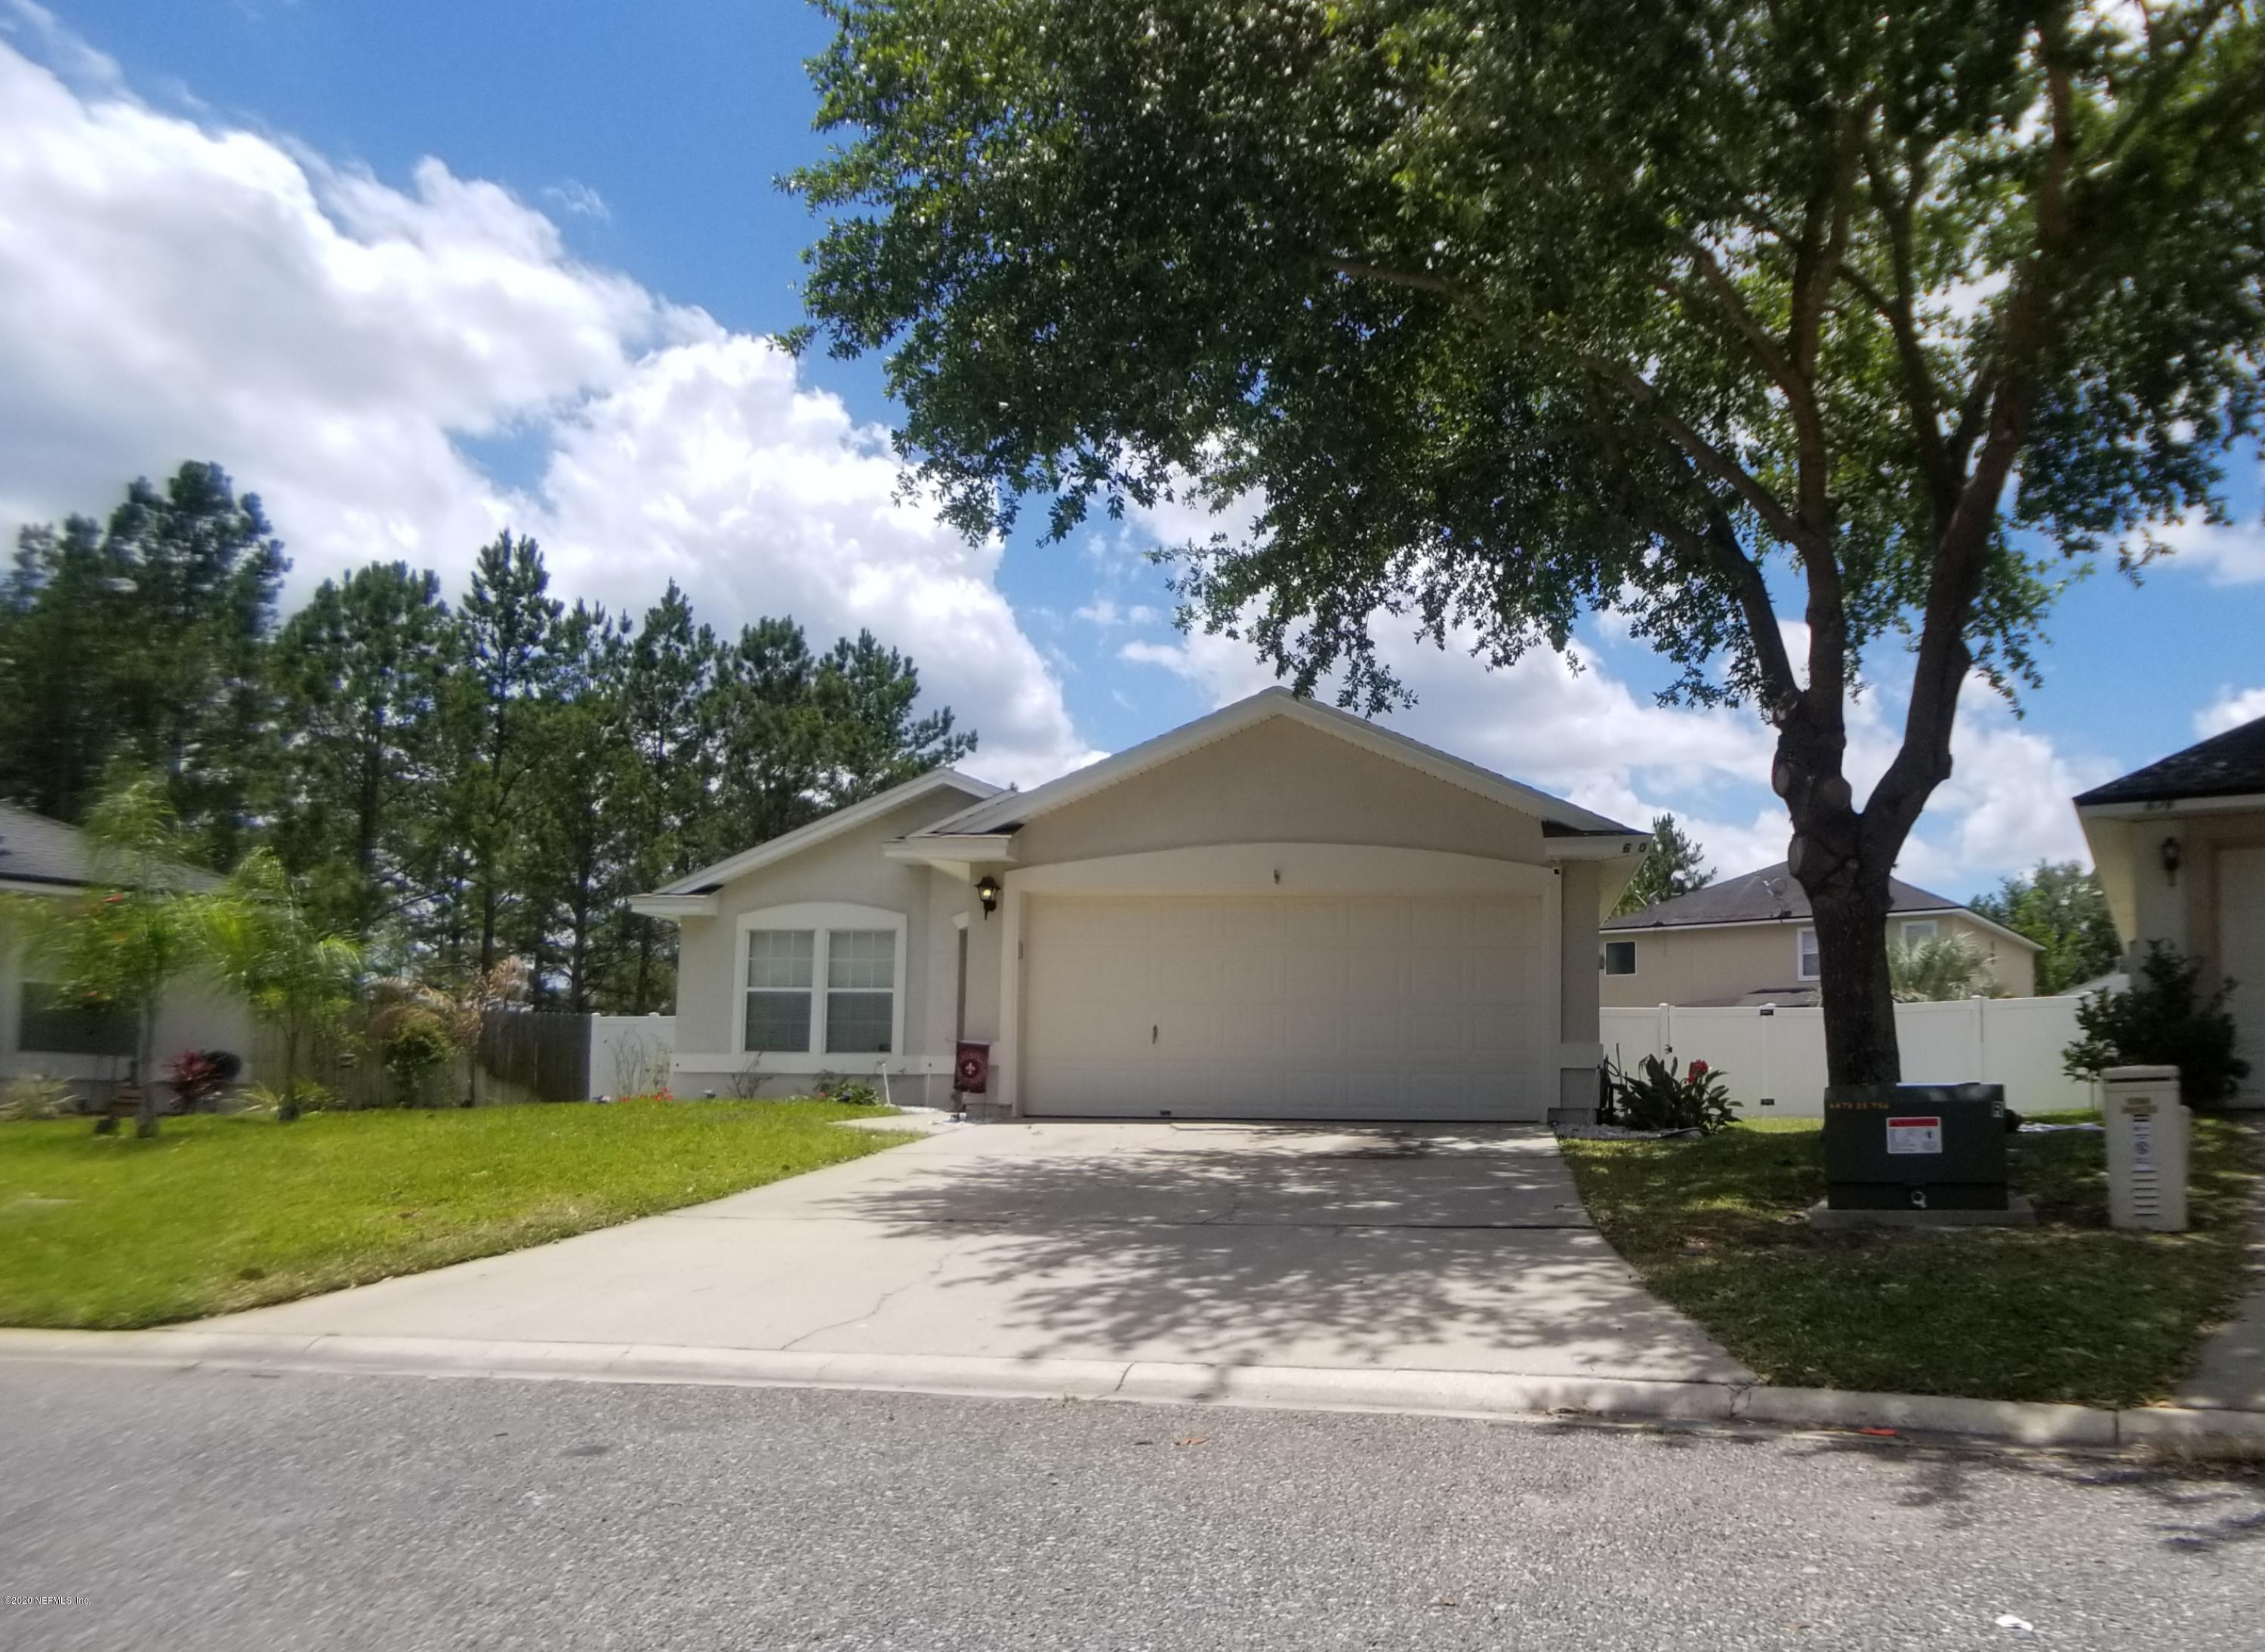 680 SOUTHLAND, ORANGE PARK, FLORIDA 32065, 3 Bedrooms Bedrooms, ,2 BathroomsBathrooms,Residential,For sale,SOUTHLAND,1054123